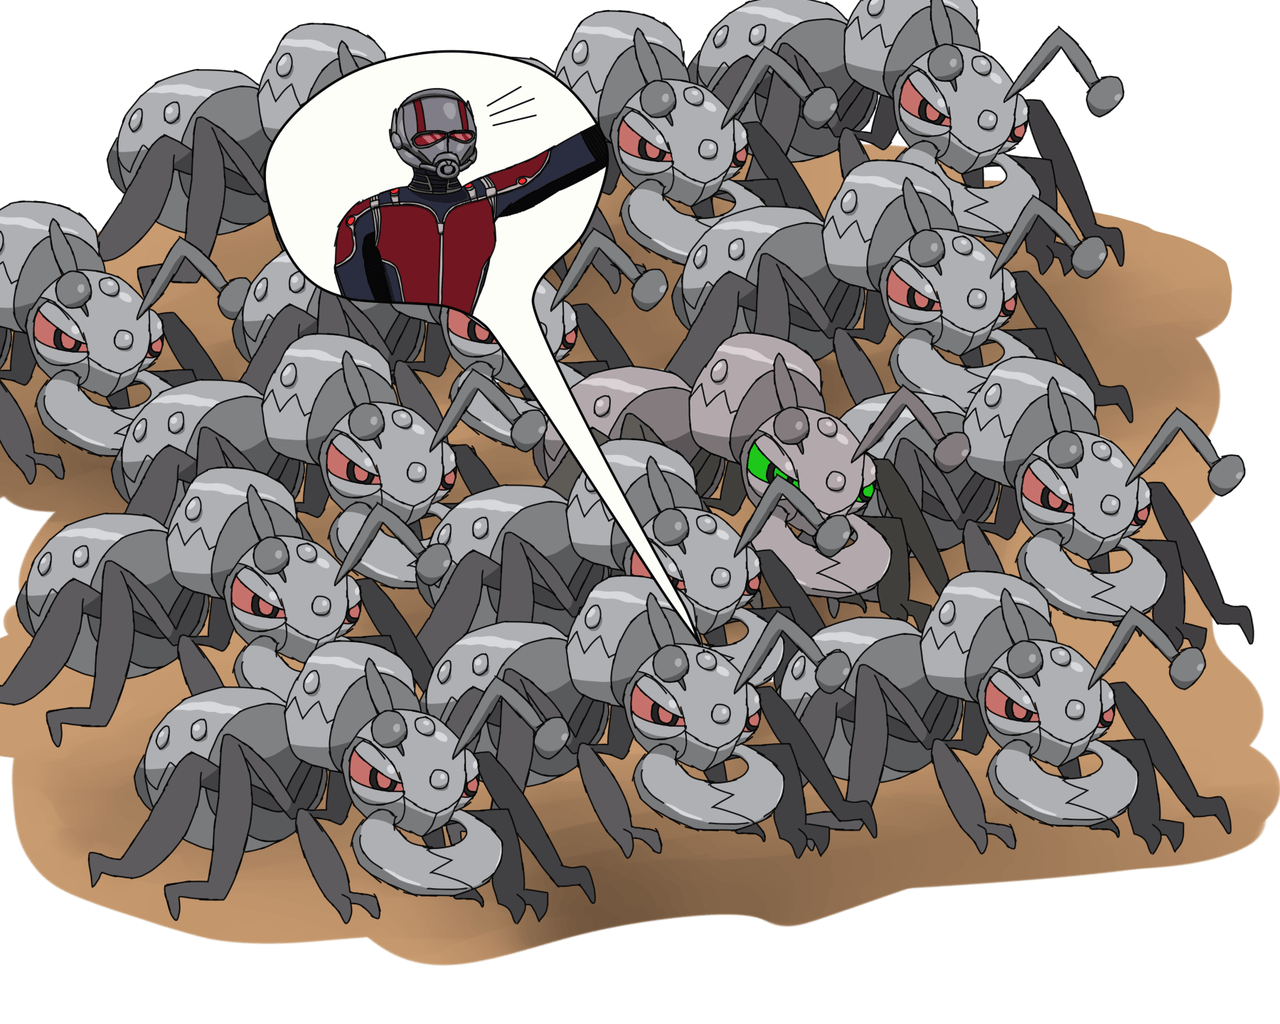 ... Ant-Man in lots of backup Durant by Deaf-Machbot - Ant-Man in lots of backup Durant by Deaf-Machbot on DeviantArt - Durant HD Pokemon Wallpapers